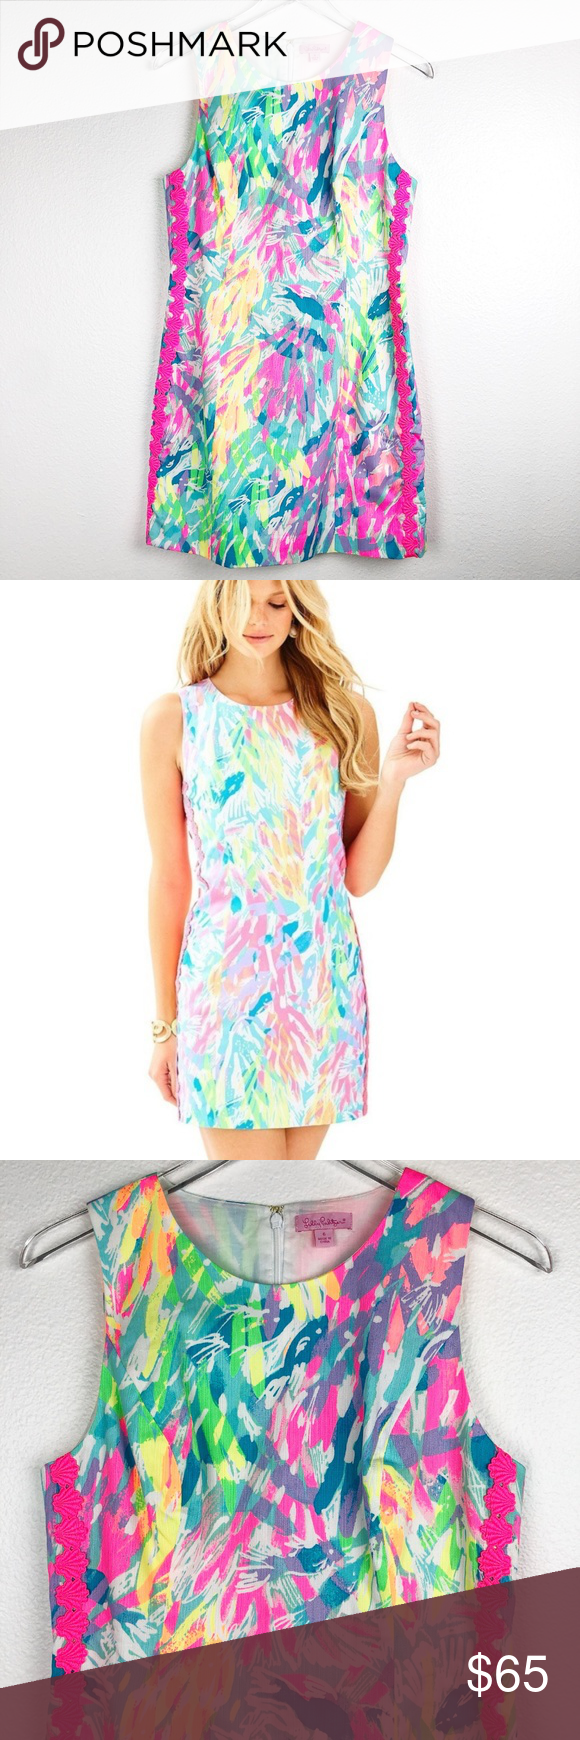 348c0a82 Lilly Pulitzer Mila Shift Dress Sparkling Sands 6 Shift dress in neon leaf  print. Embroidered